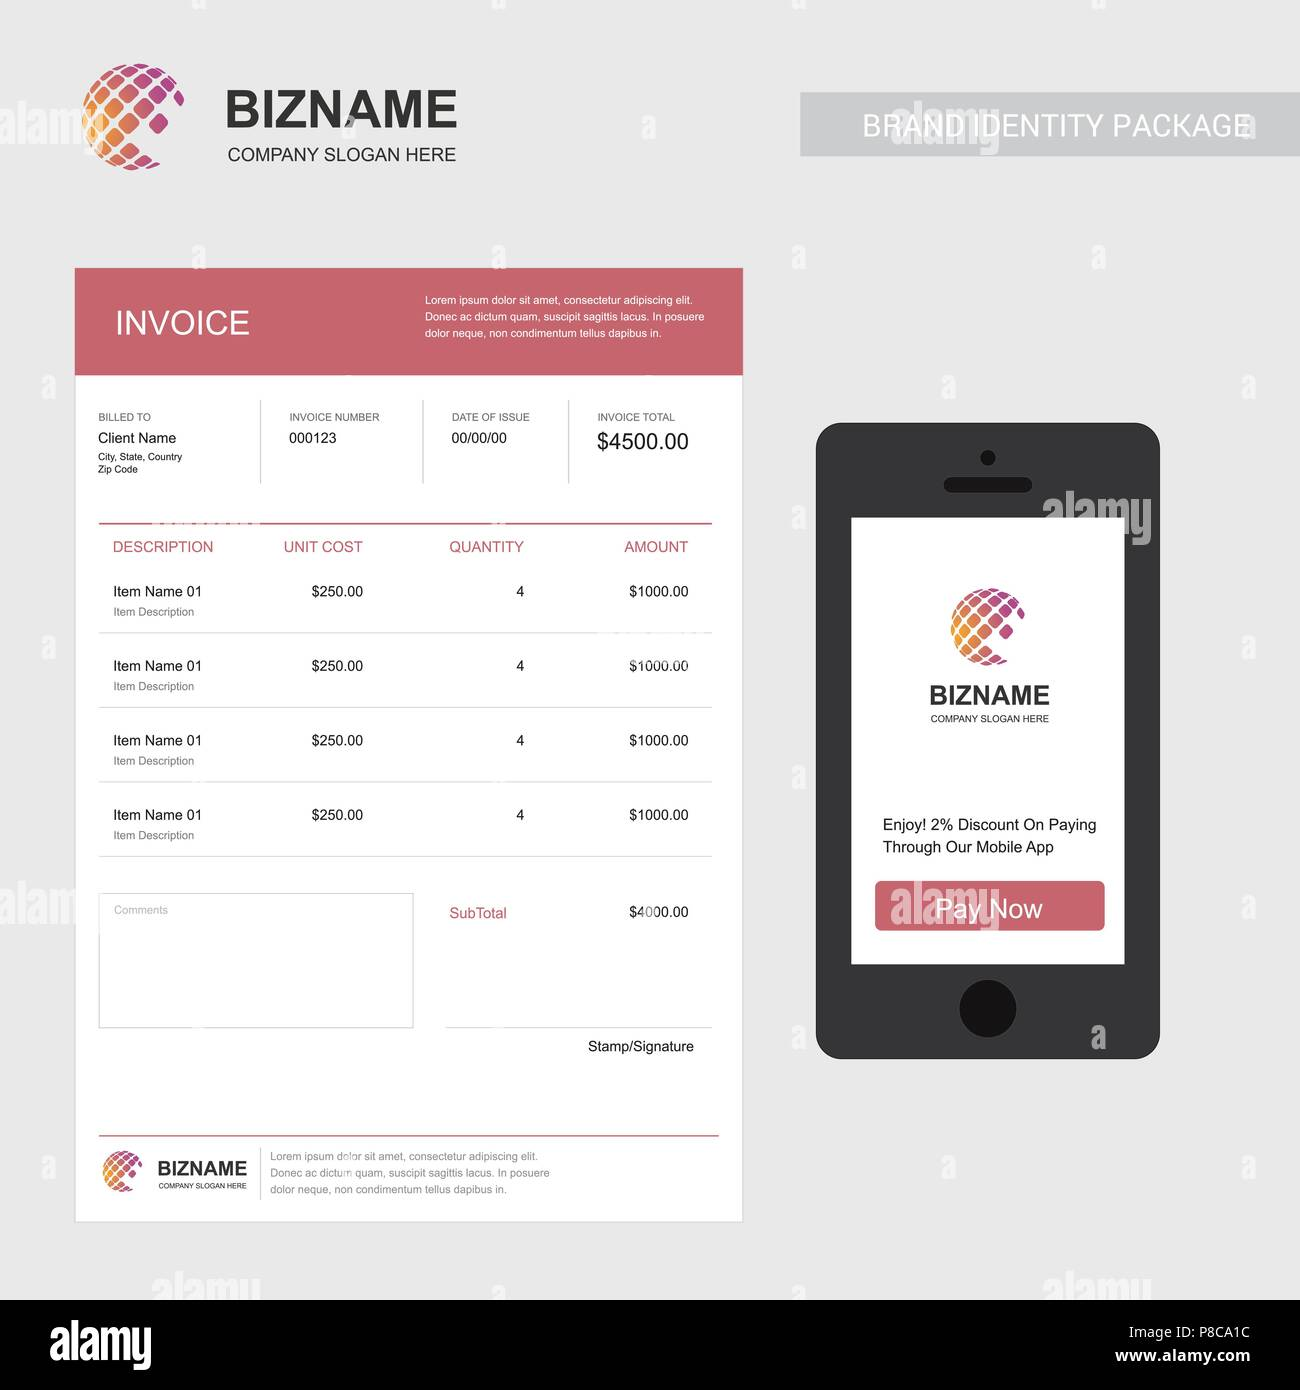 Company invoice design and also mobile app design vector with world company invoice design and also mobile app design vector with world map for web design and application interface also useful for infographics vect gumiabroncs Image collections